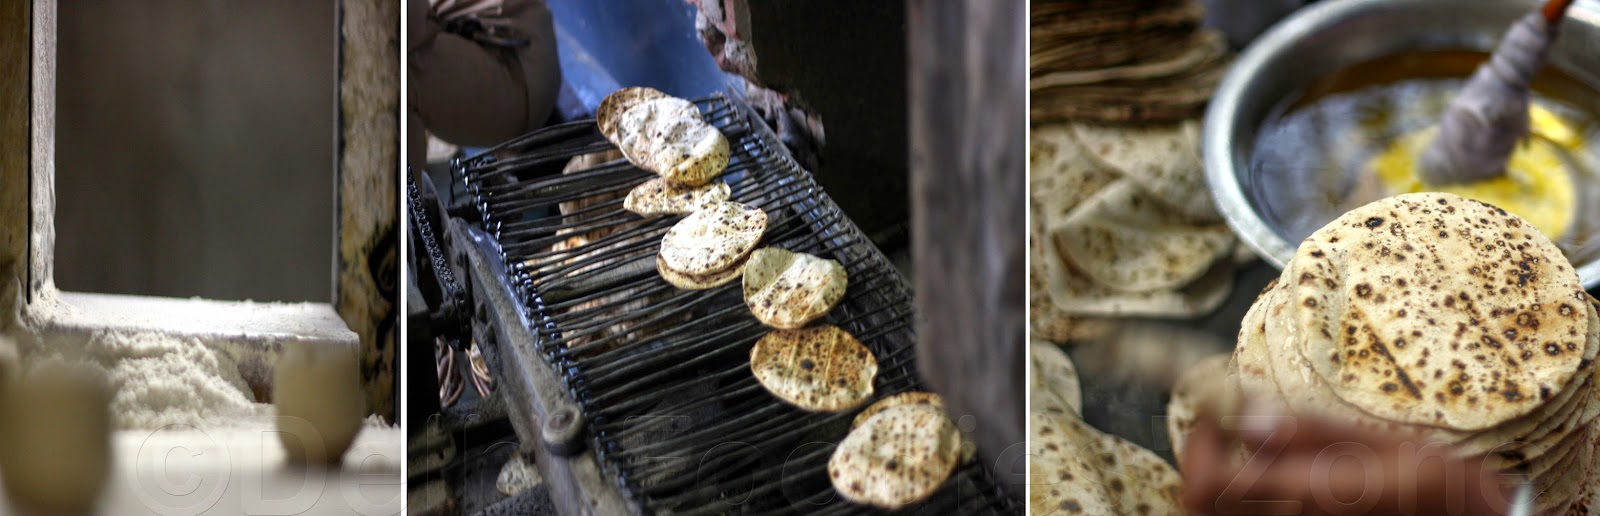 delhi foodies zone behind the scenes of golden temple langar the automated roti chapati making machine at the golden temple everything from the dough kneading to the rolling of chapattis and the final puffing sekna